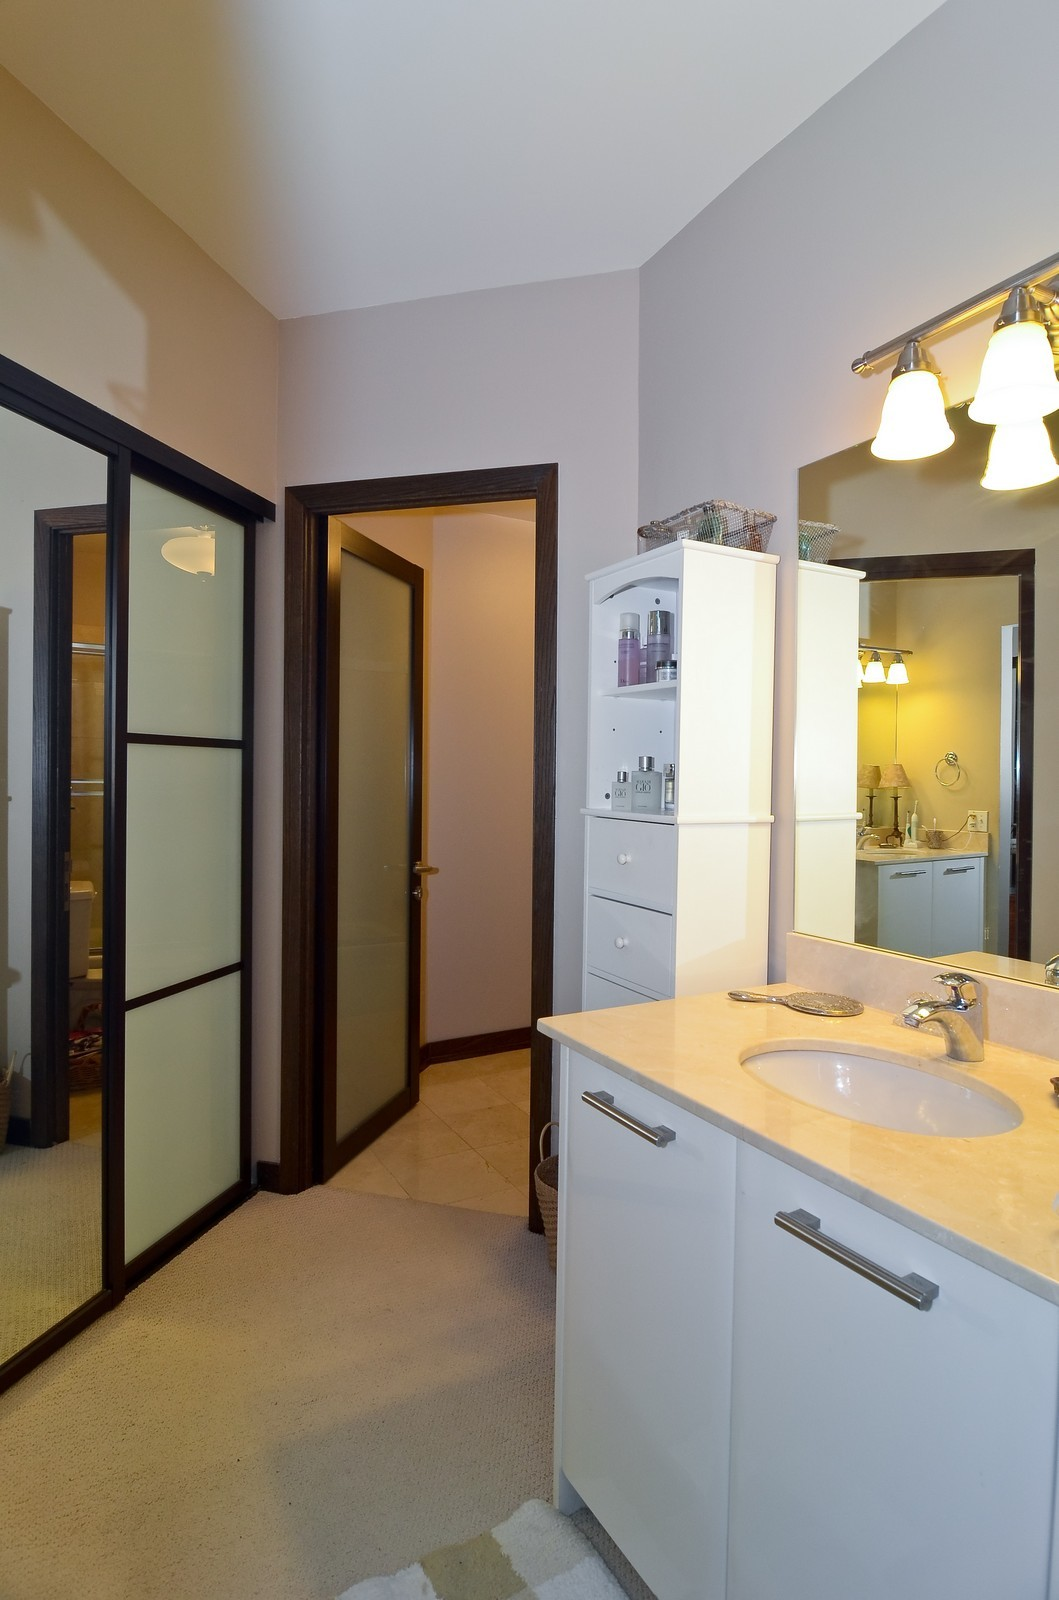 Real Estate Photography - 740 S Federal, 1101, Chicago, IL, 60605 - Master Bathroom